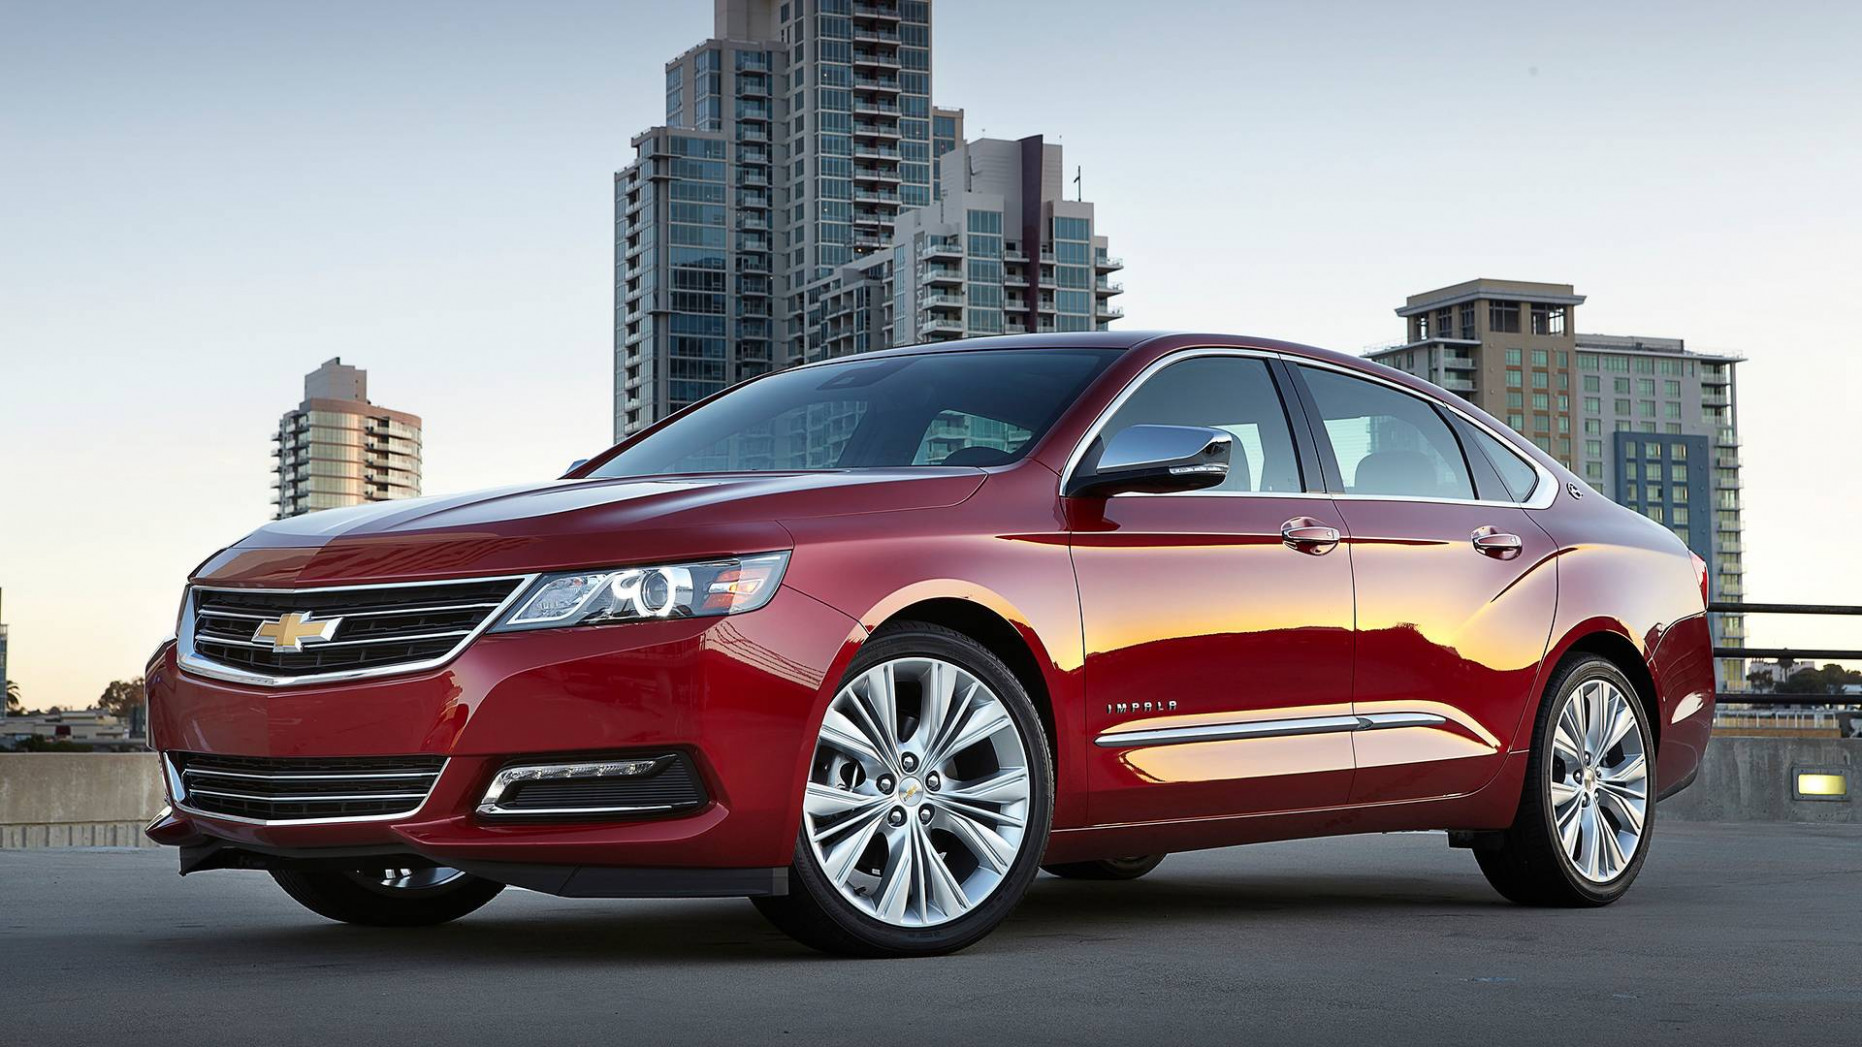 8 Chevy Impala Gets $8,8 Base Price Increase For Its Final Year - 2020 chevrolet impala msrp